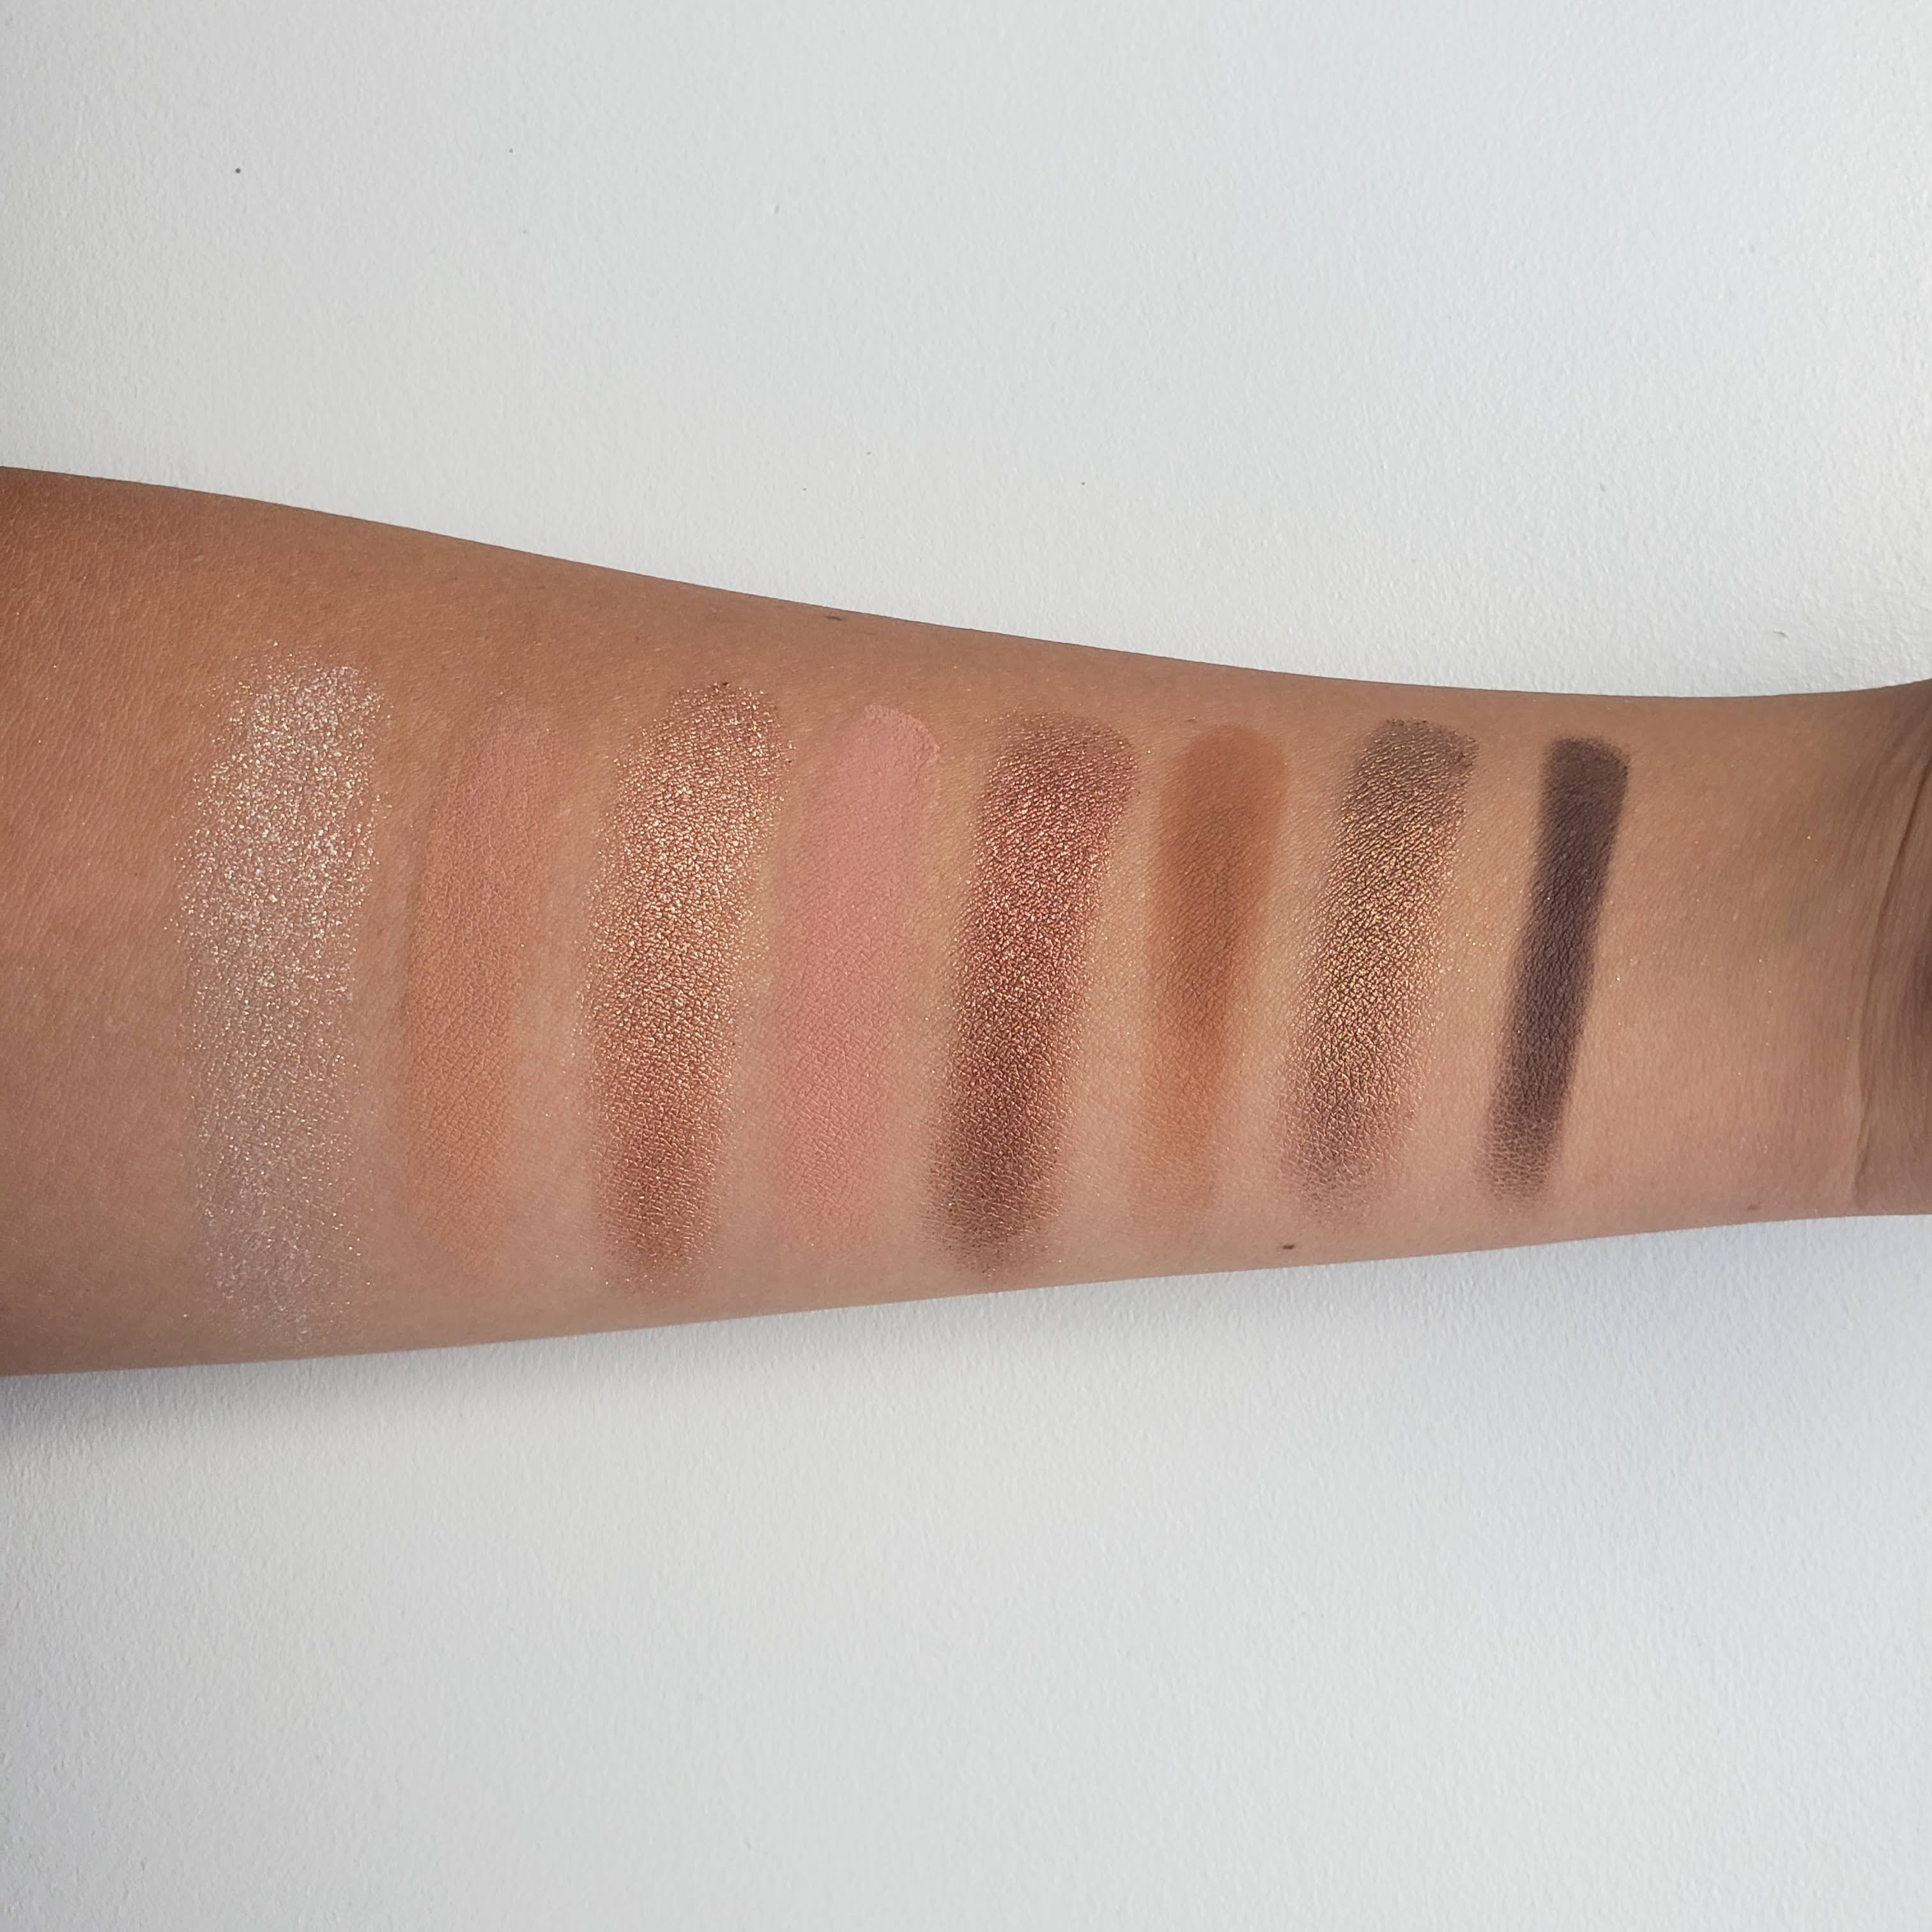 Too Faced Born This Way The Natural Nudes Complexion Inspired Eyeshadow Palette Review Swatches 2